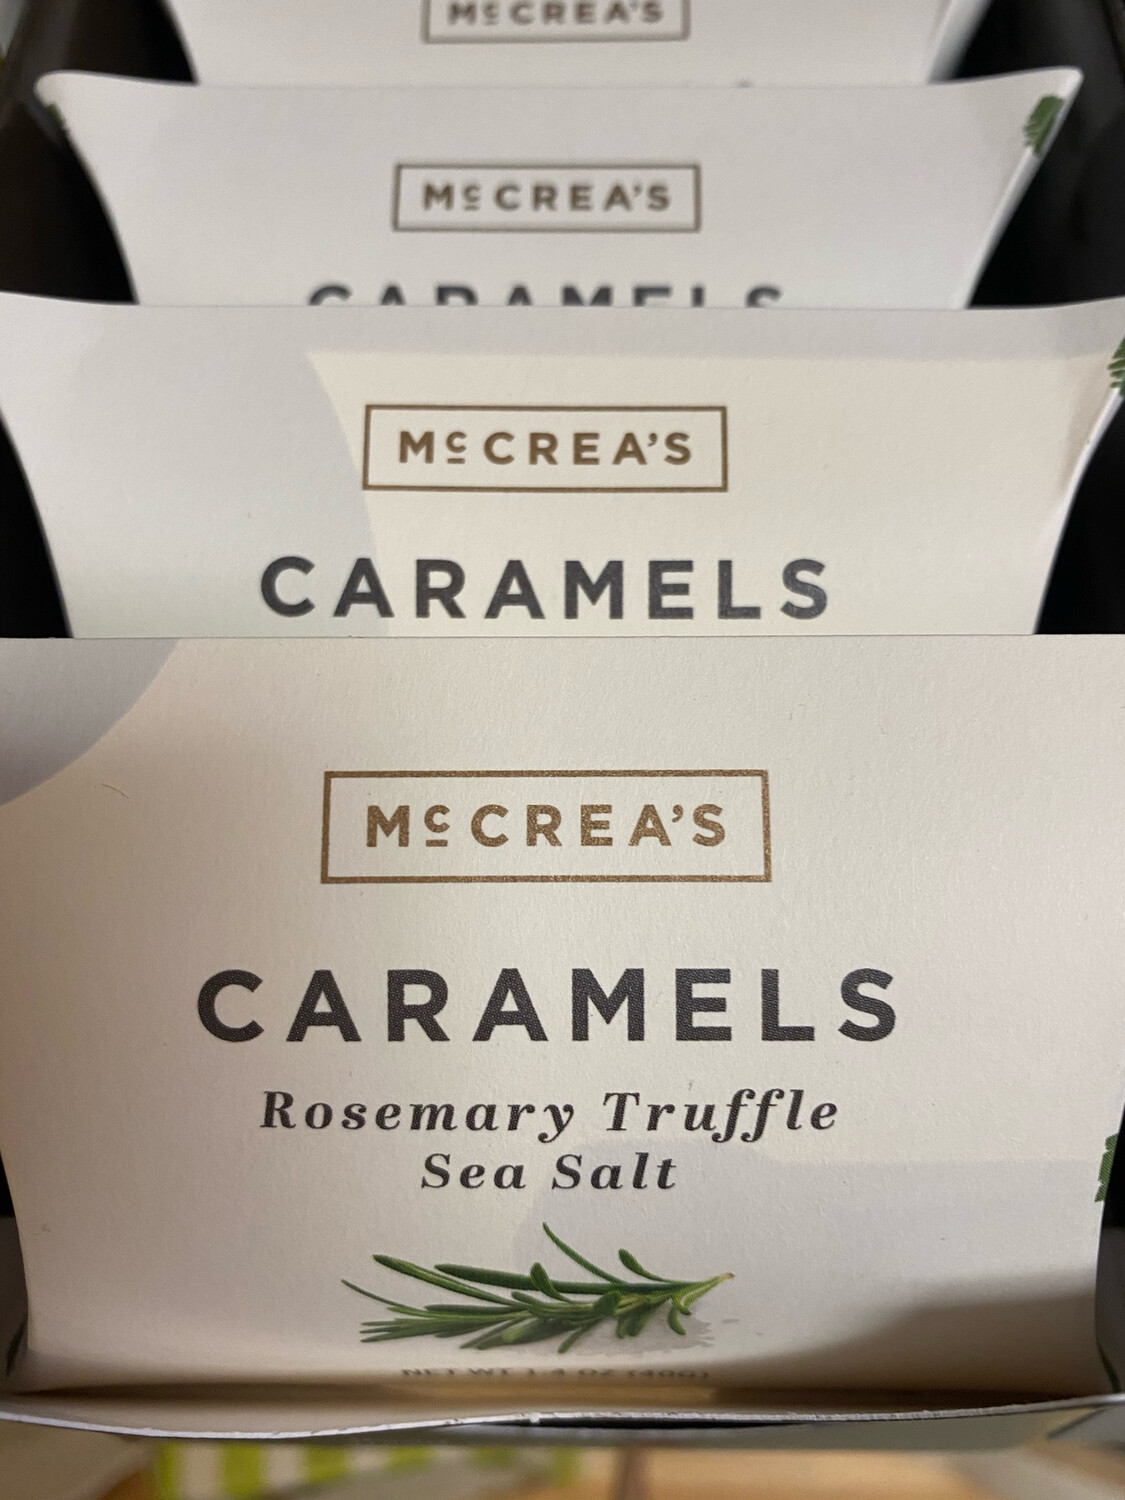 McCrea's Rosemary Truffle & sea Salt Caramel Pillow Box